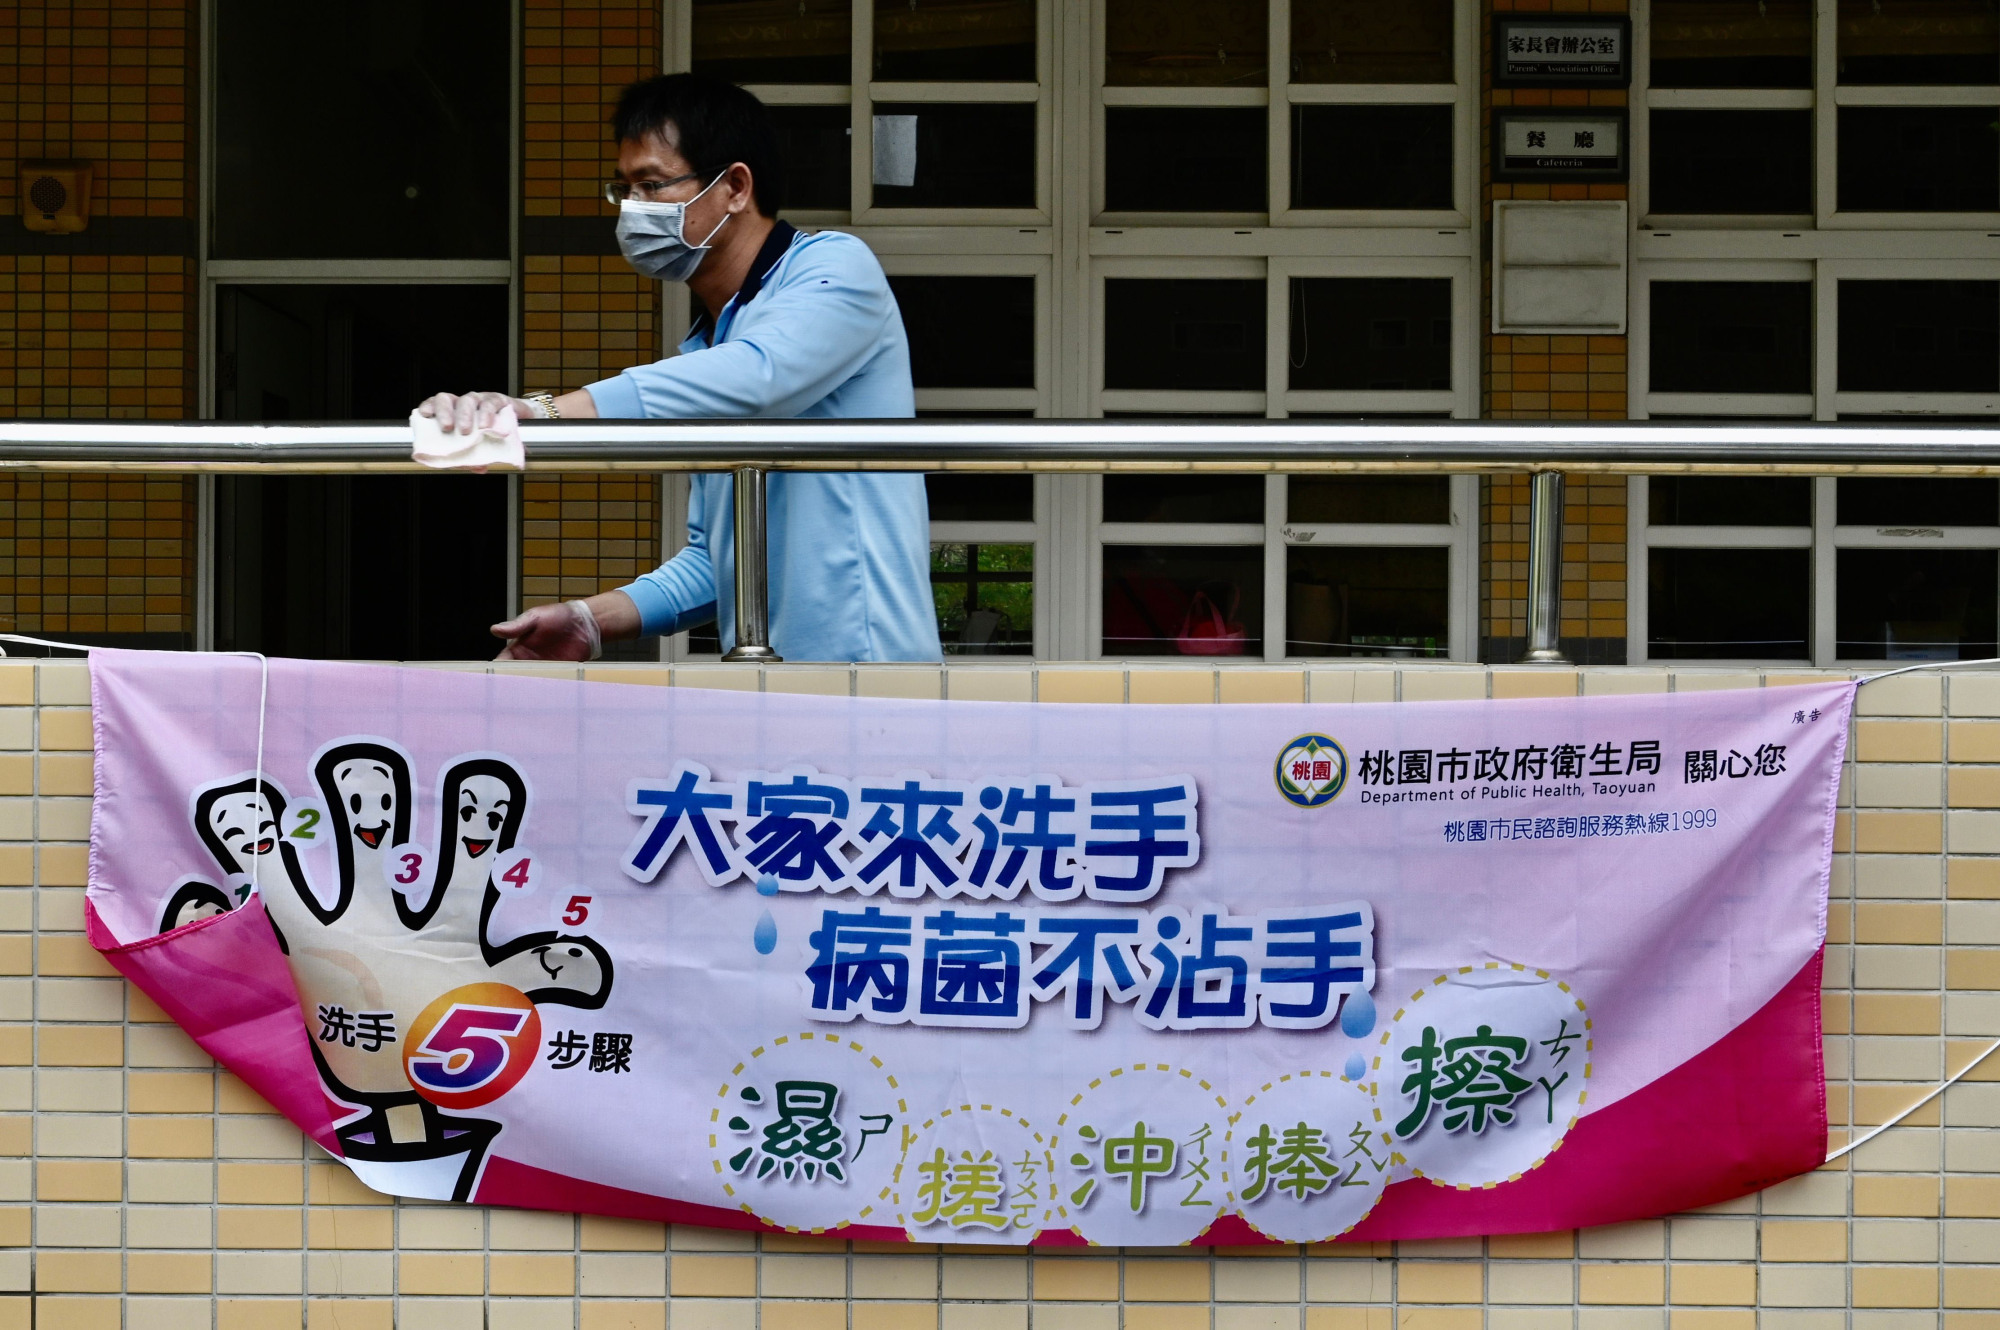 A man cleans a handrail at a middle school in Taoyuan, northern Taiwan, on Saturday behind a sign telling students how to wash their hands to prevent the transmission of COVID-19. | AFP-JIJI